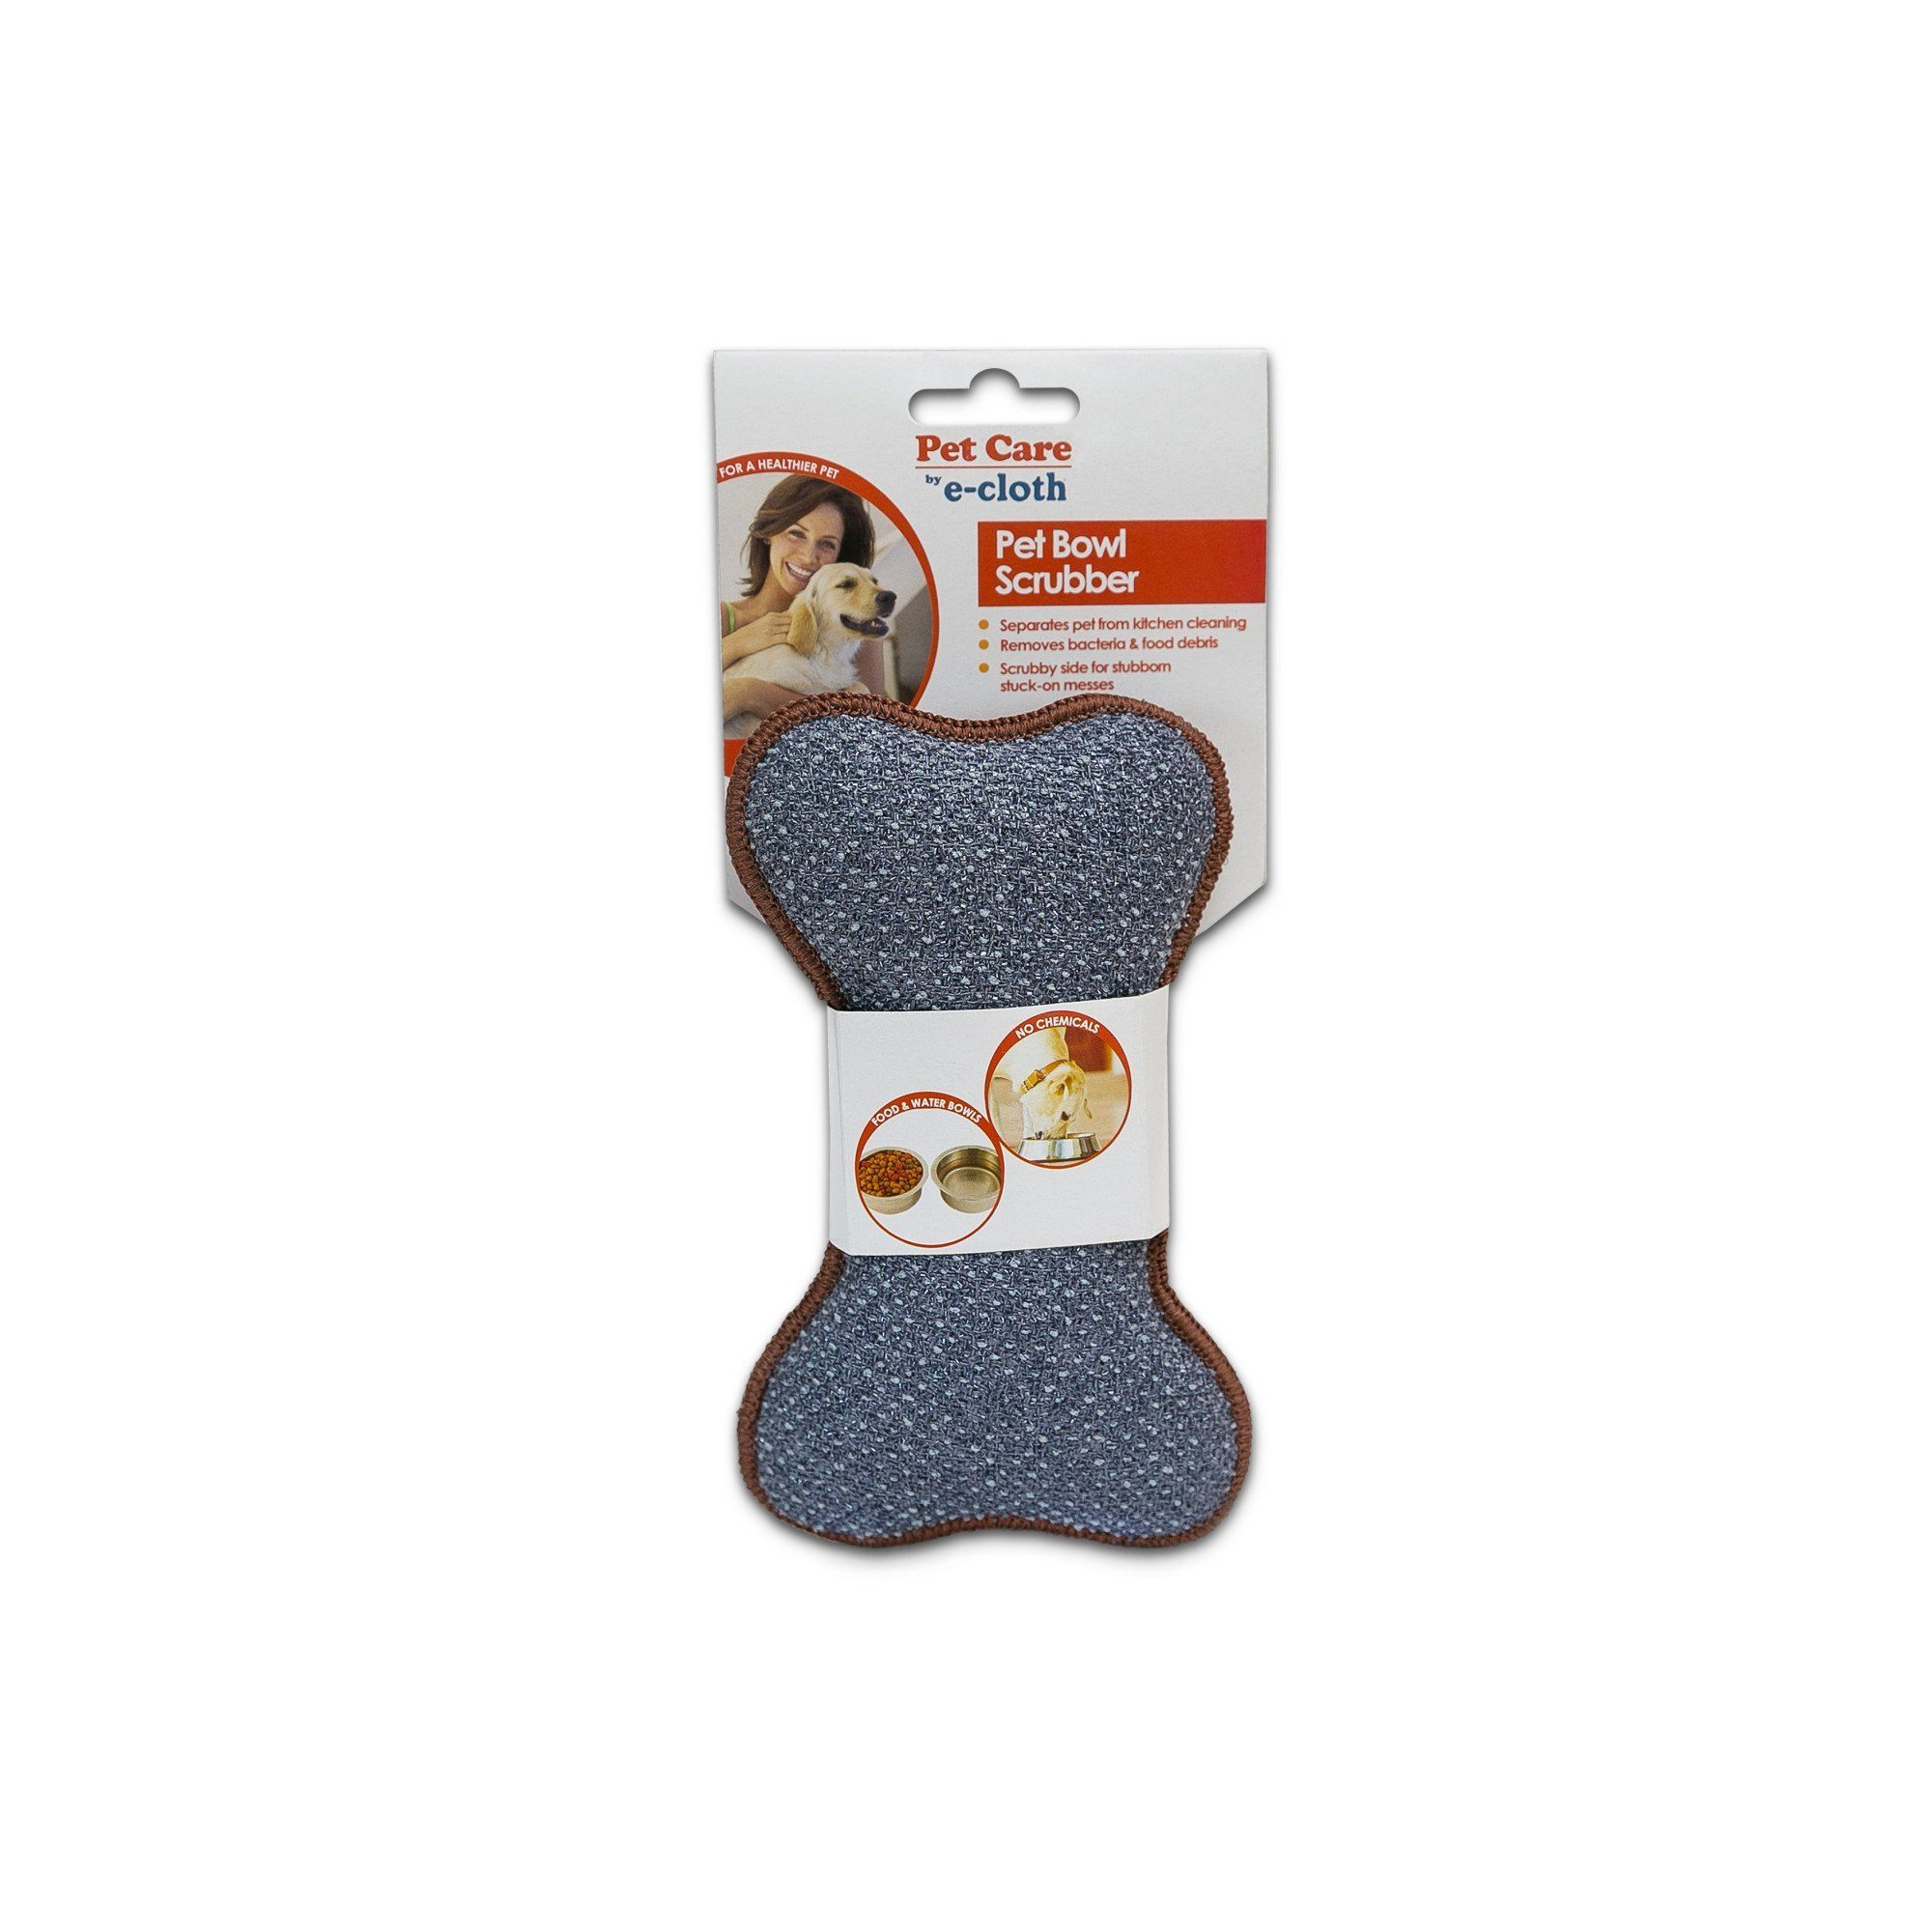 Home & Life - E-cloth - Pet Bowl Scrubber, 1 UNIT